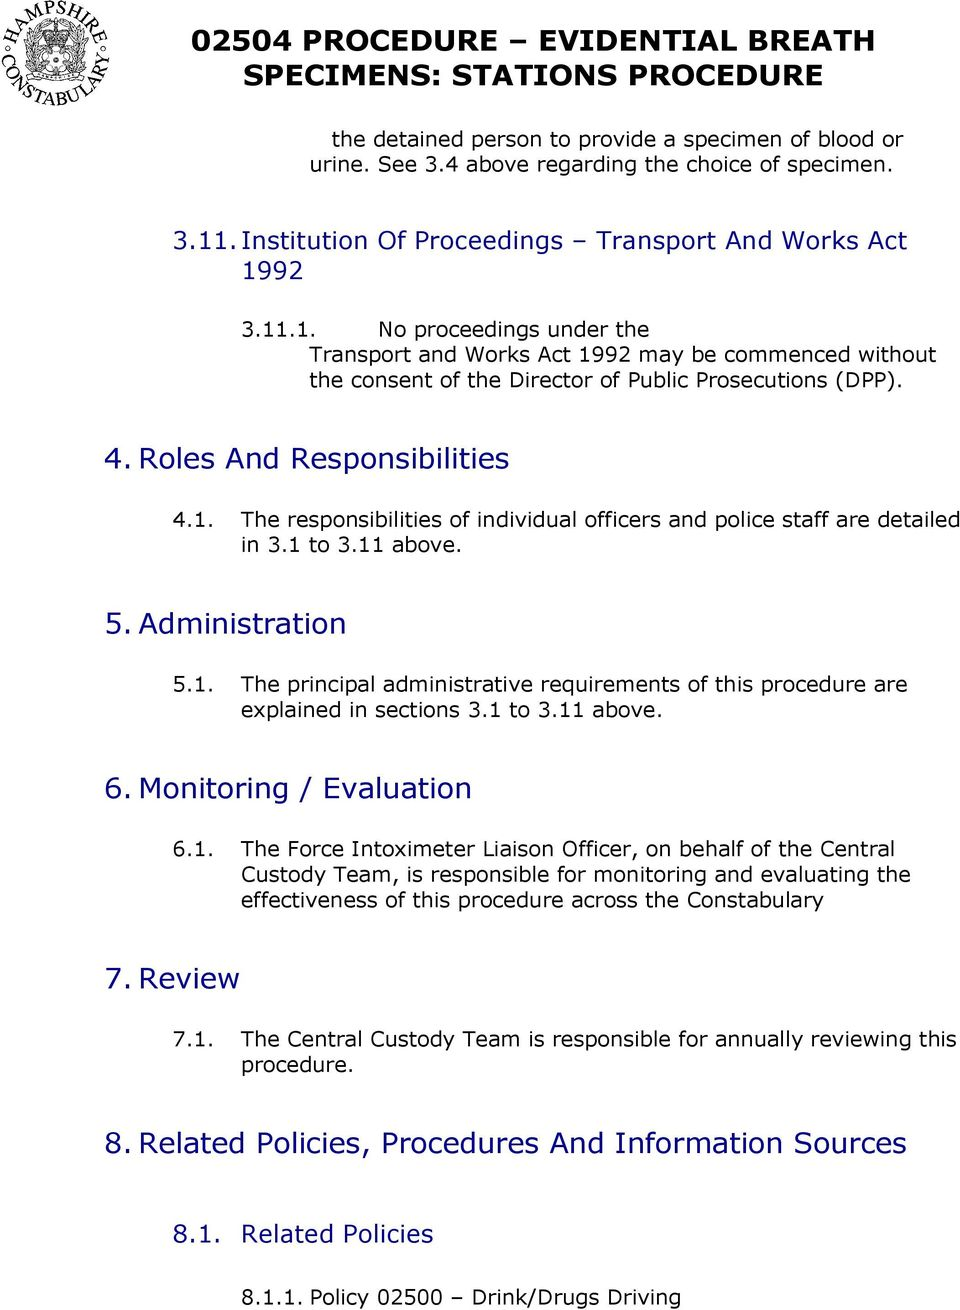 4. Roles And Responsibilities 4.1. The responsibilities of individual officers and police staff are detailed in 3.1 to 3.11 above. 5. Administration 5.1. The principal administrative requirements of this procedure are explained in sections 3.